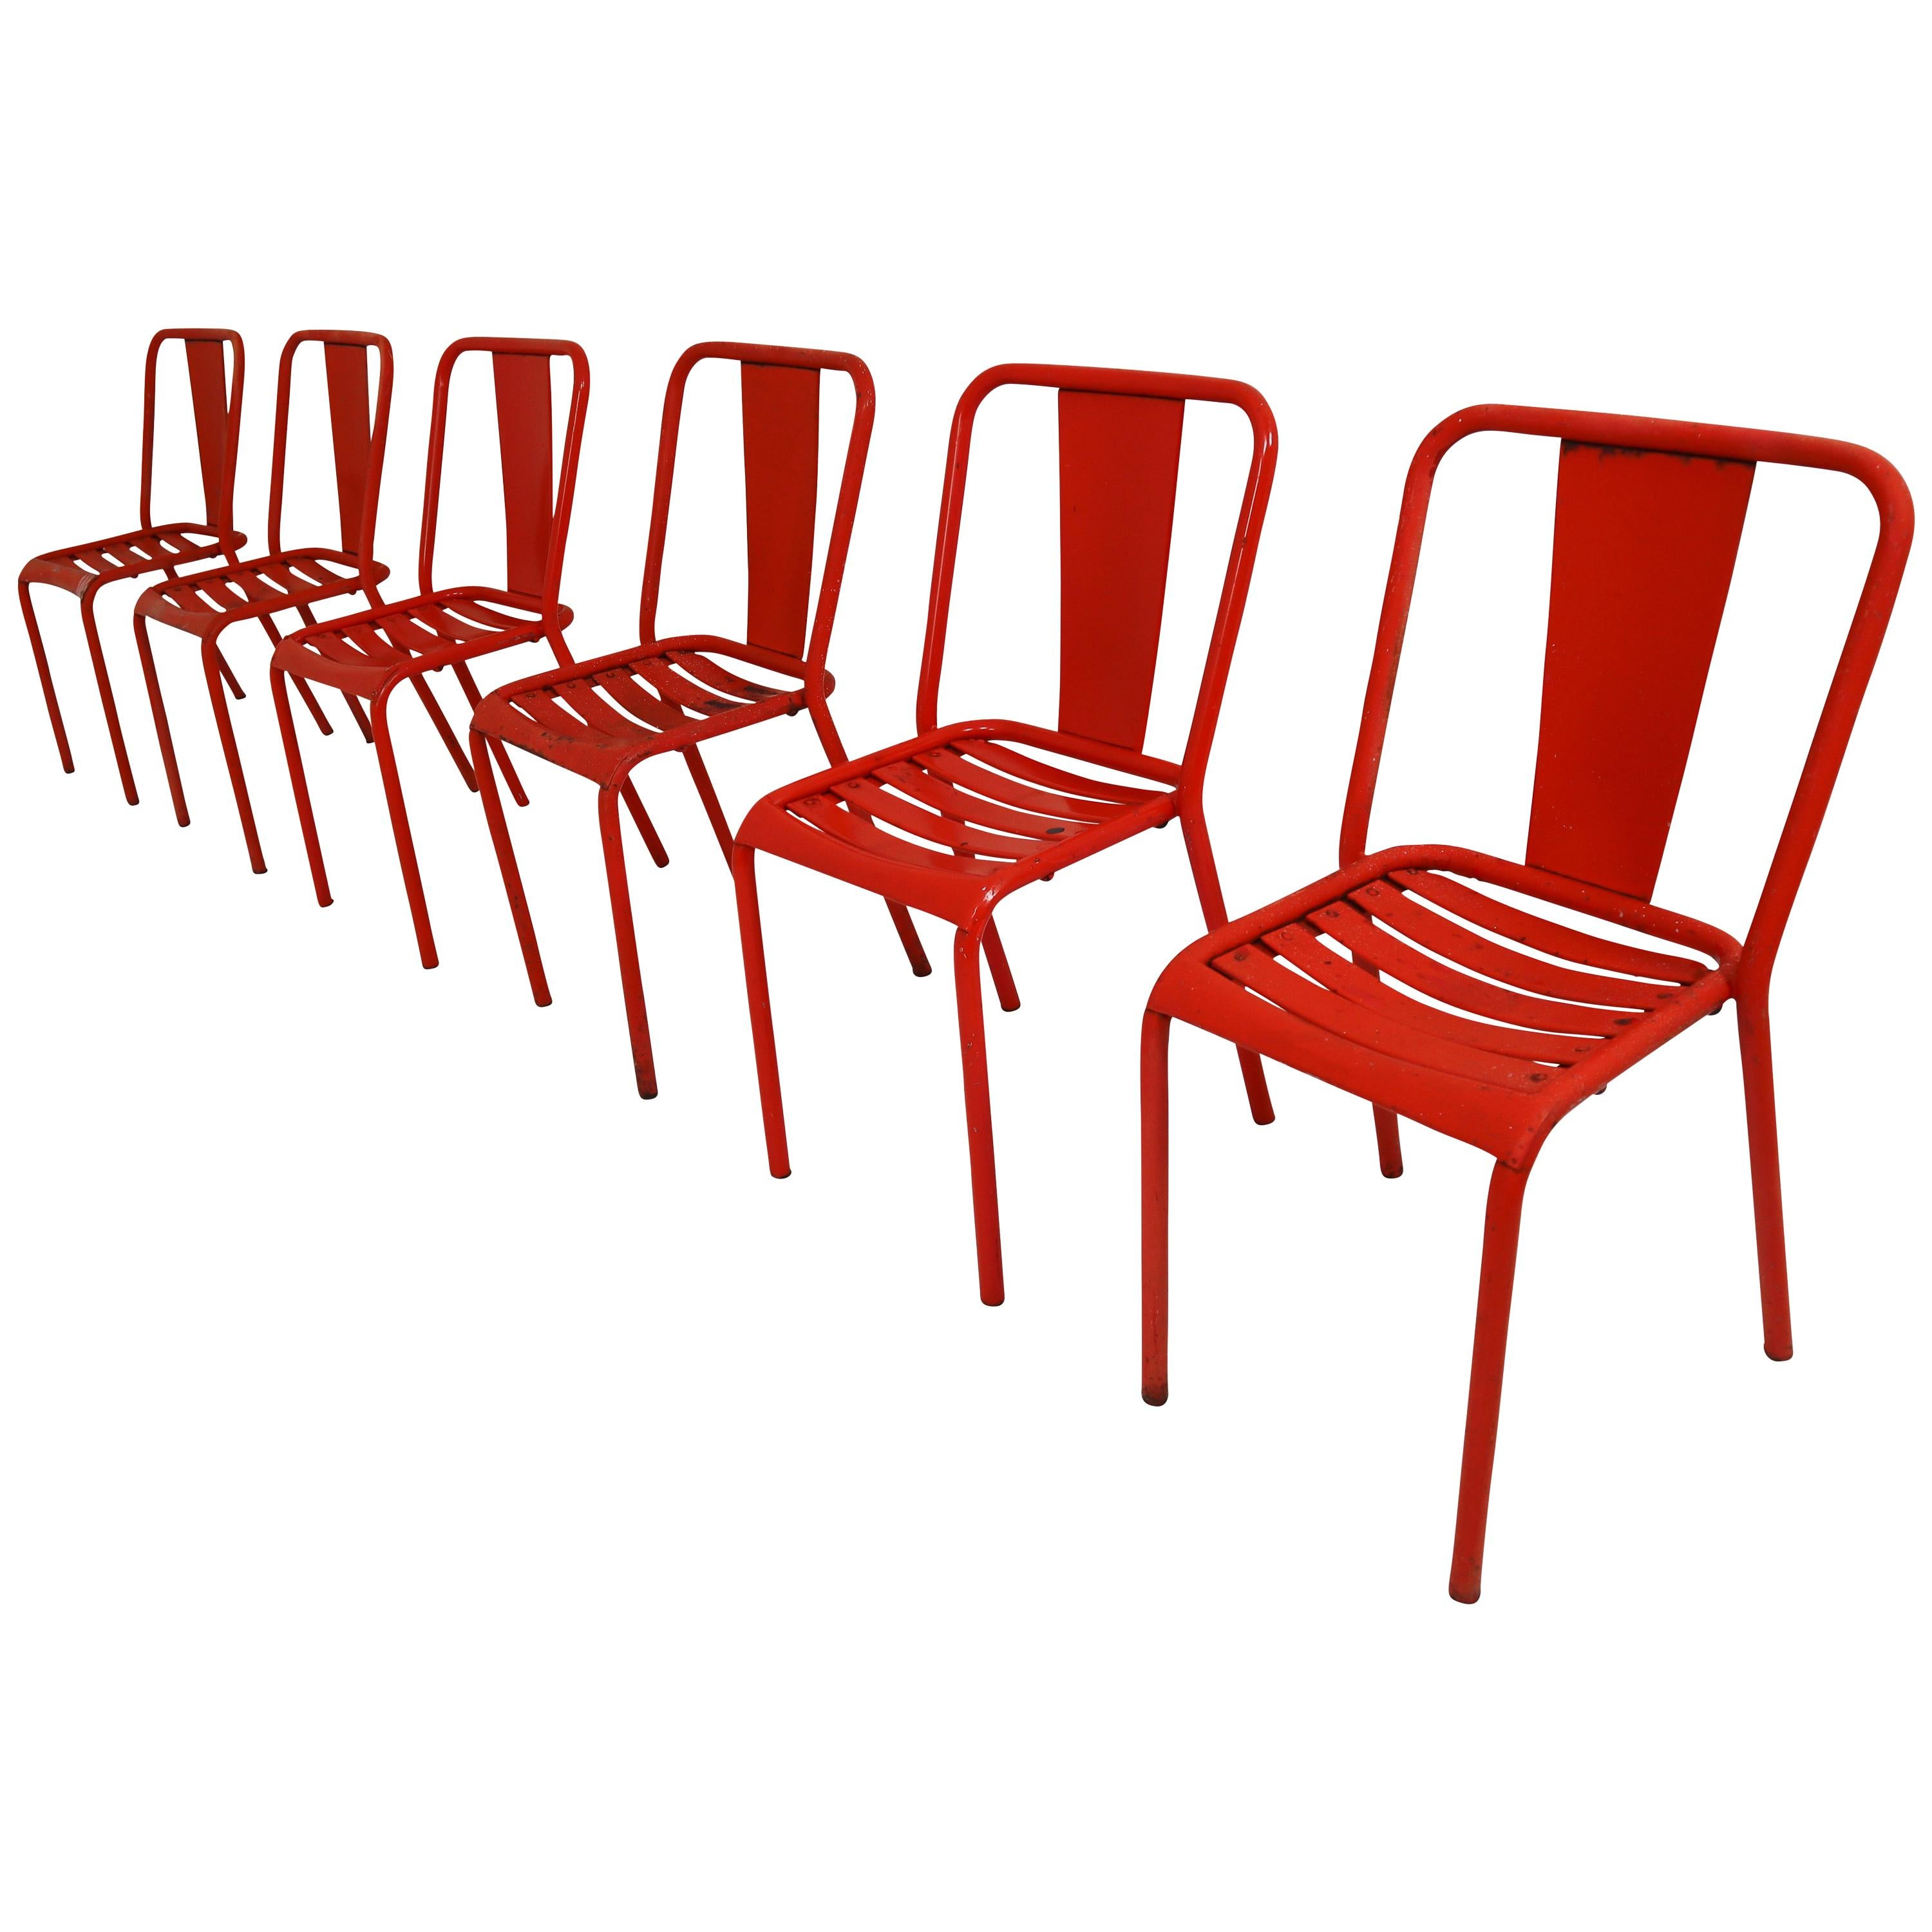 red chairs for sale wingback chair ikea tolix t4 metal set of six by designer xavier pauchard 1950s